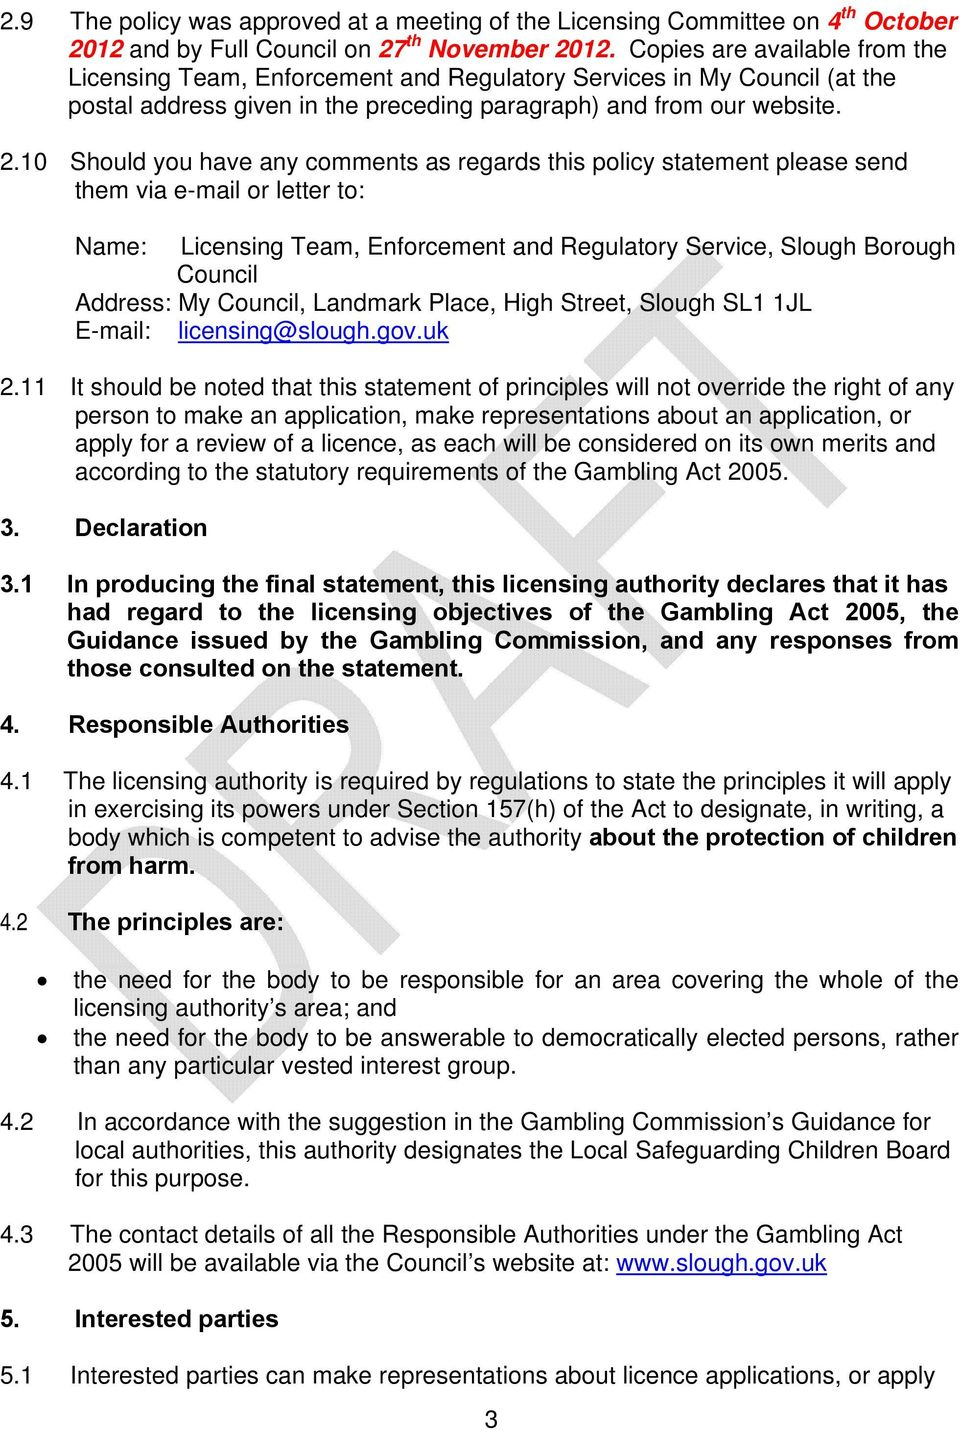 10 Should you have any comments as regards this policy statement please send them via e-mail or letter to: Name: Licensing Team, Enforcement and Regulatory Service, Slough Borough Council Address: My